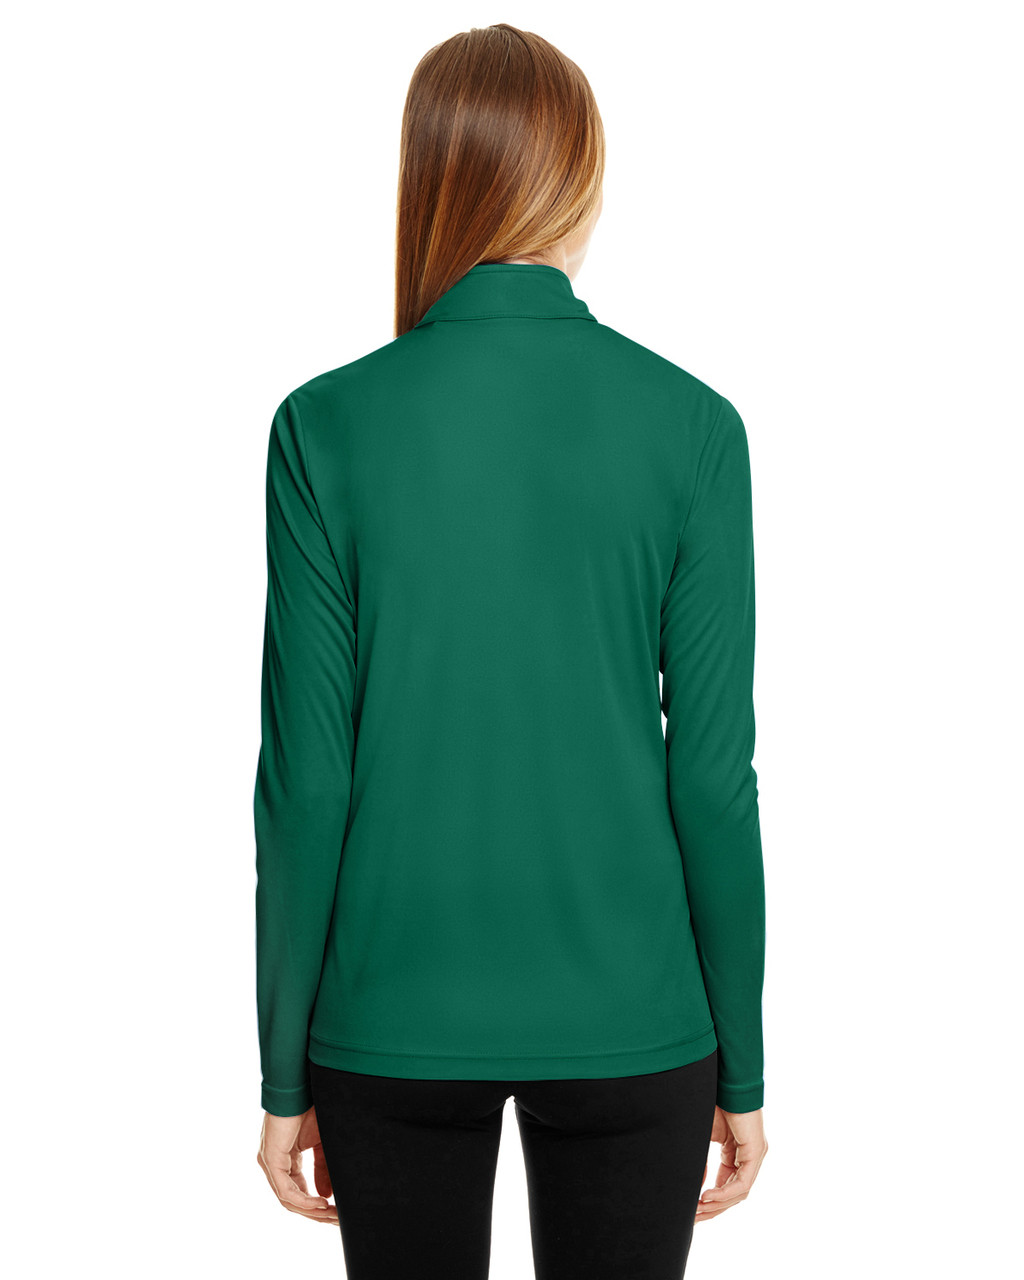 Sport Forest - TT31W Team 365 Ladies' Zone Performance Quarter-Zip Shirt